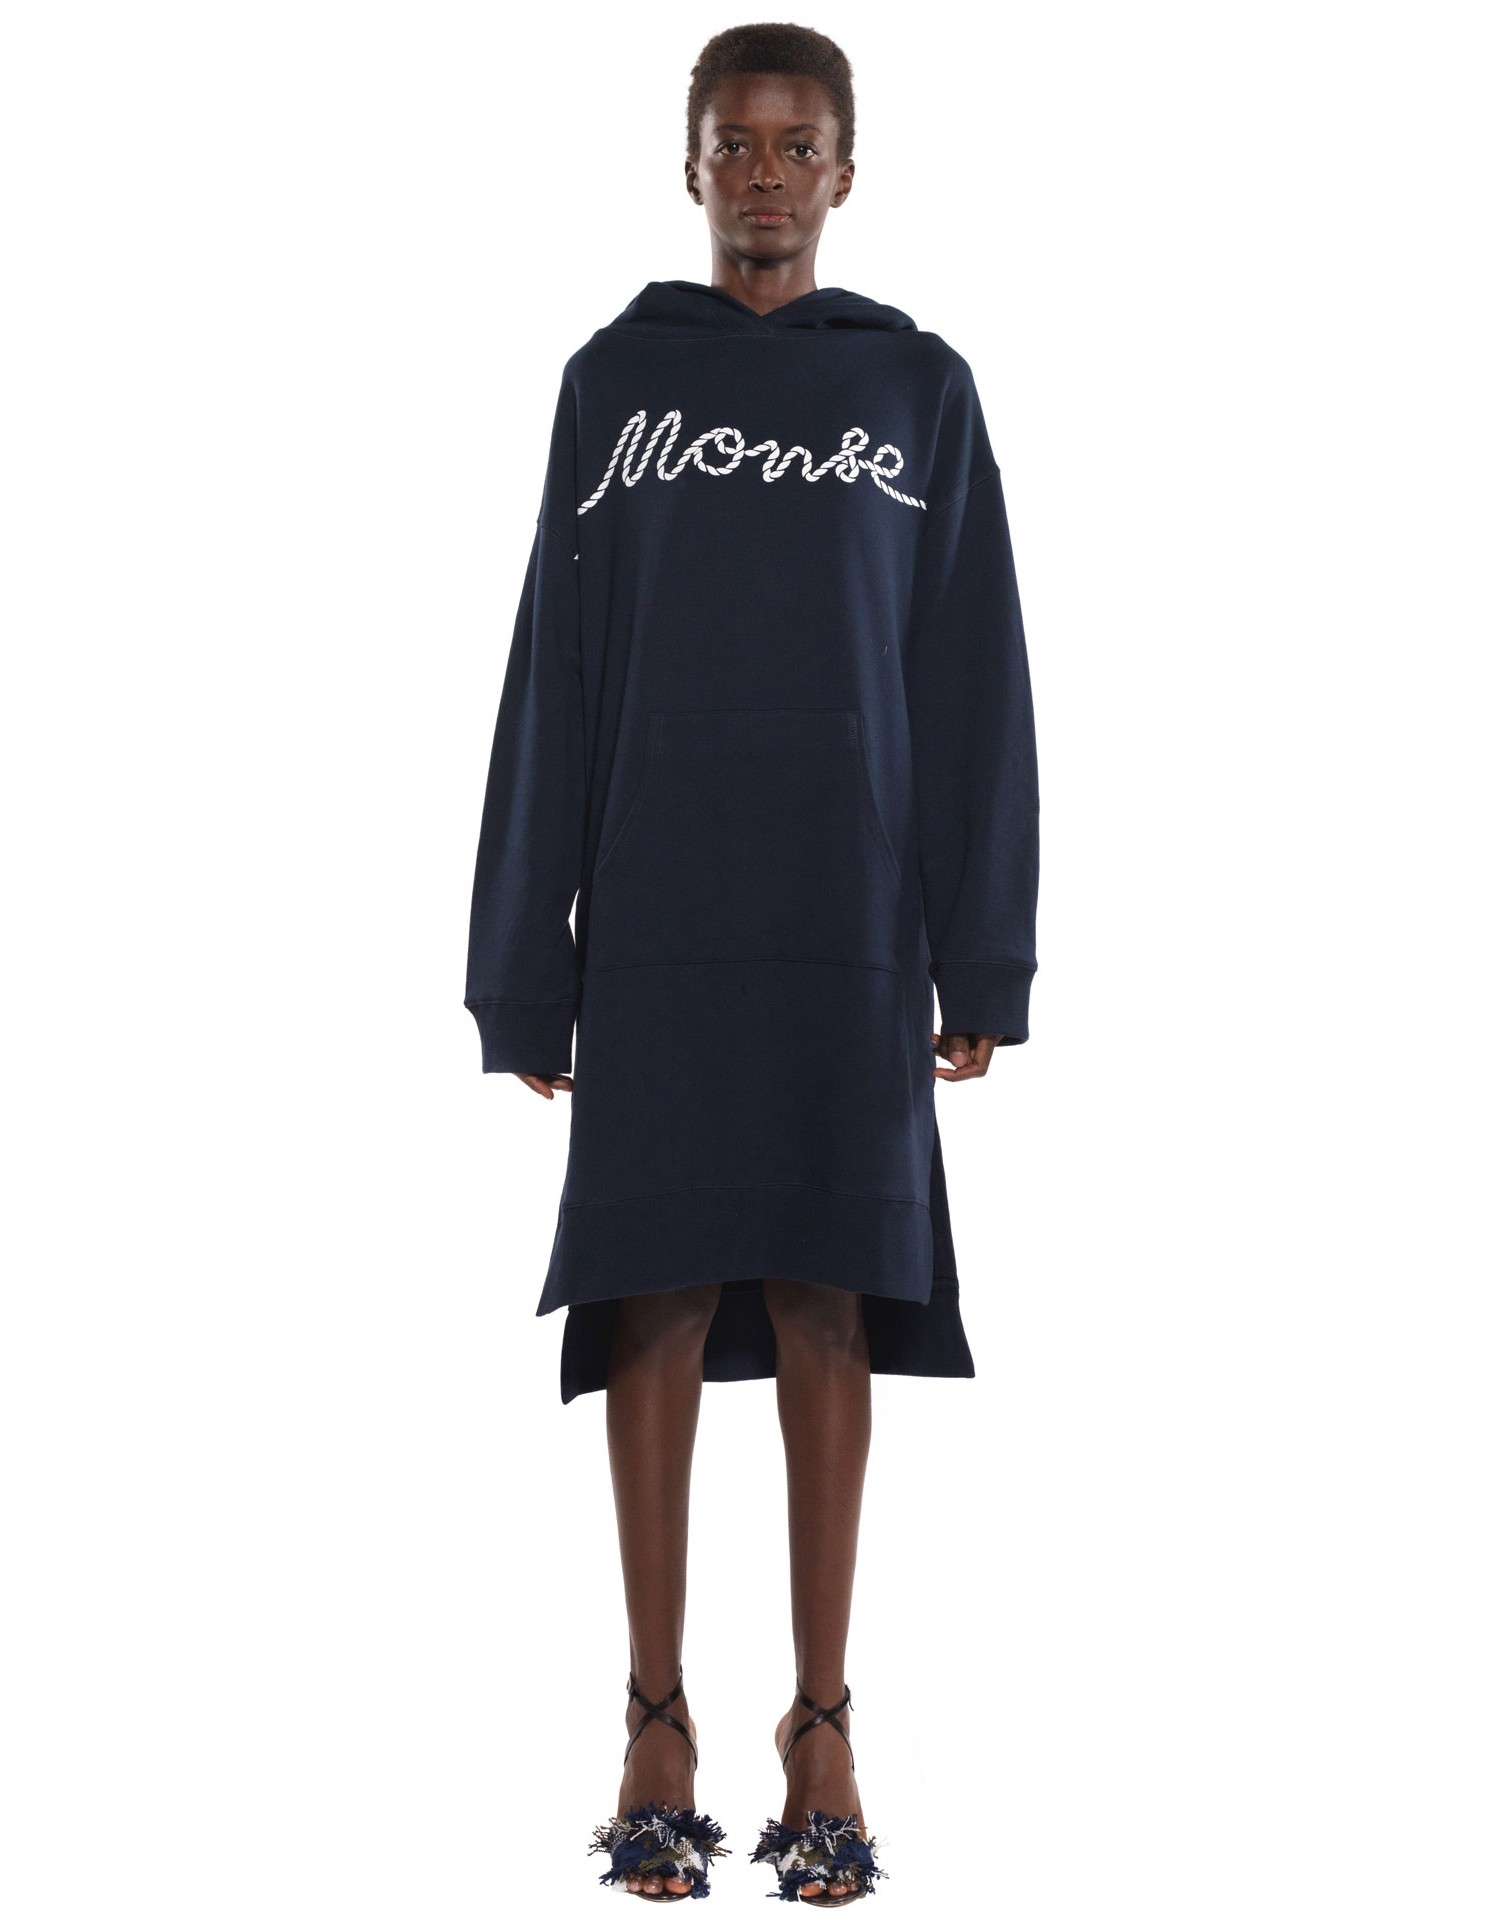 Monse Unisex Rope Hoodie in Navy on Model